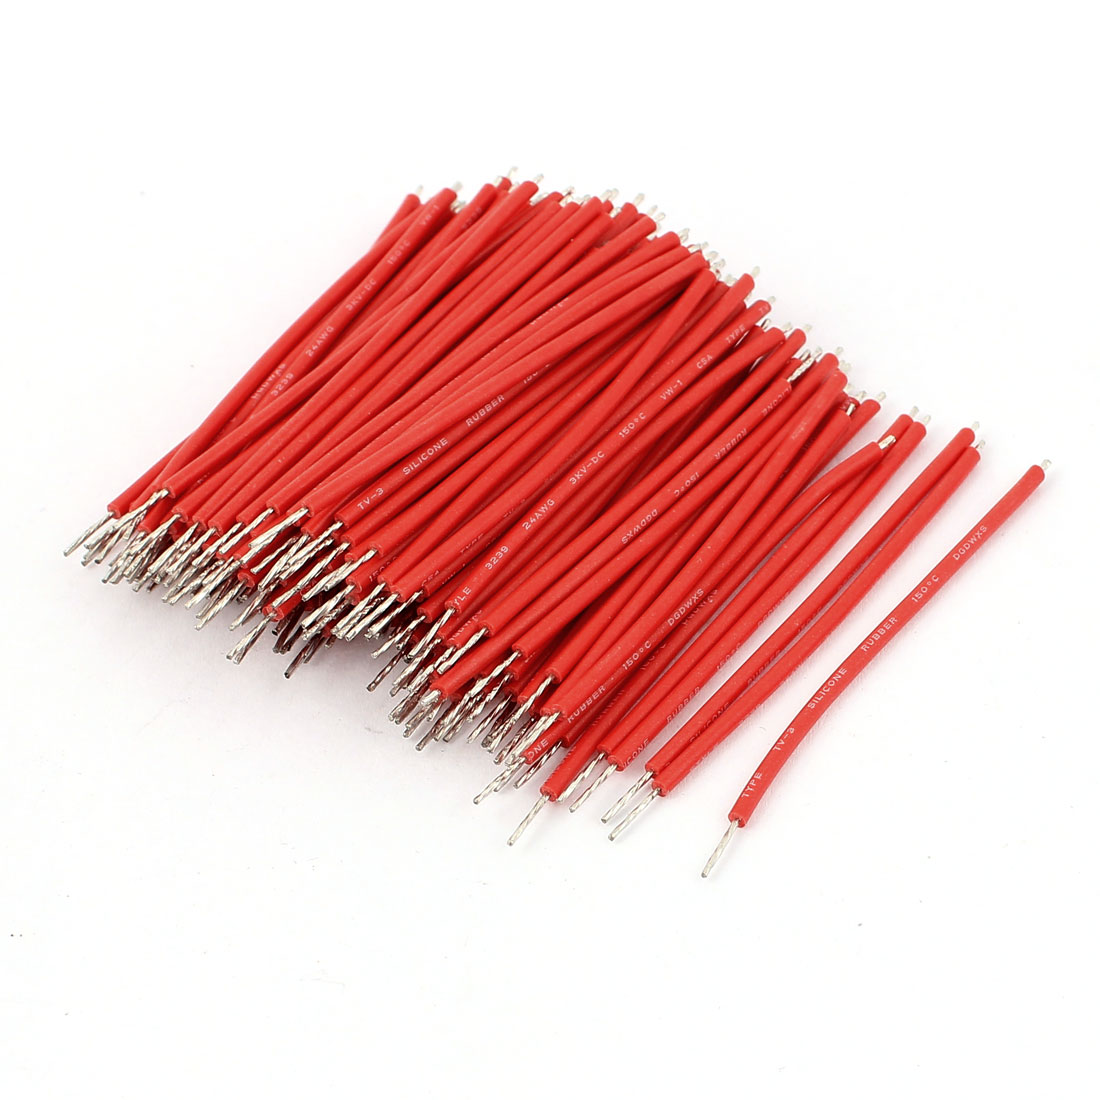 DC 3KV 24AWG Tinned Lead Core Solder Soldering Conductor Wire 150pcs